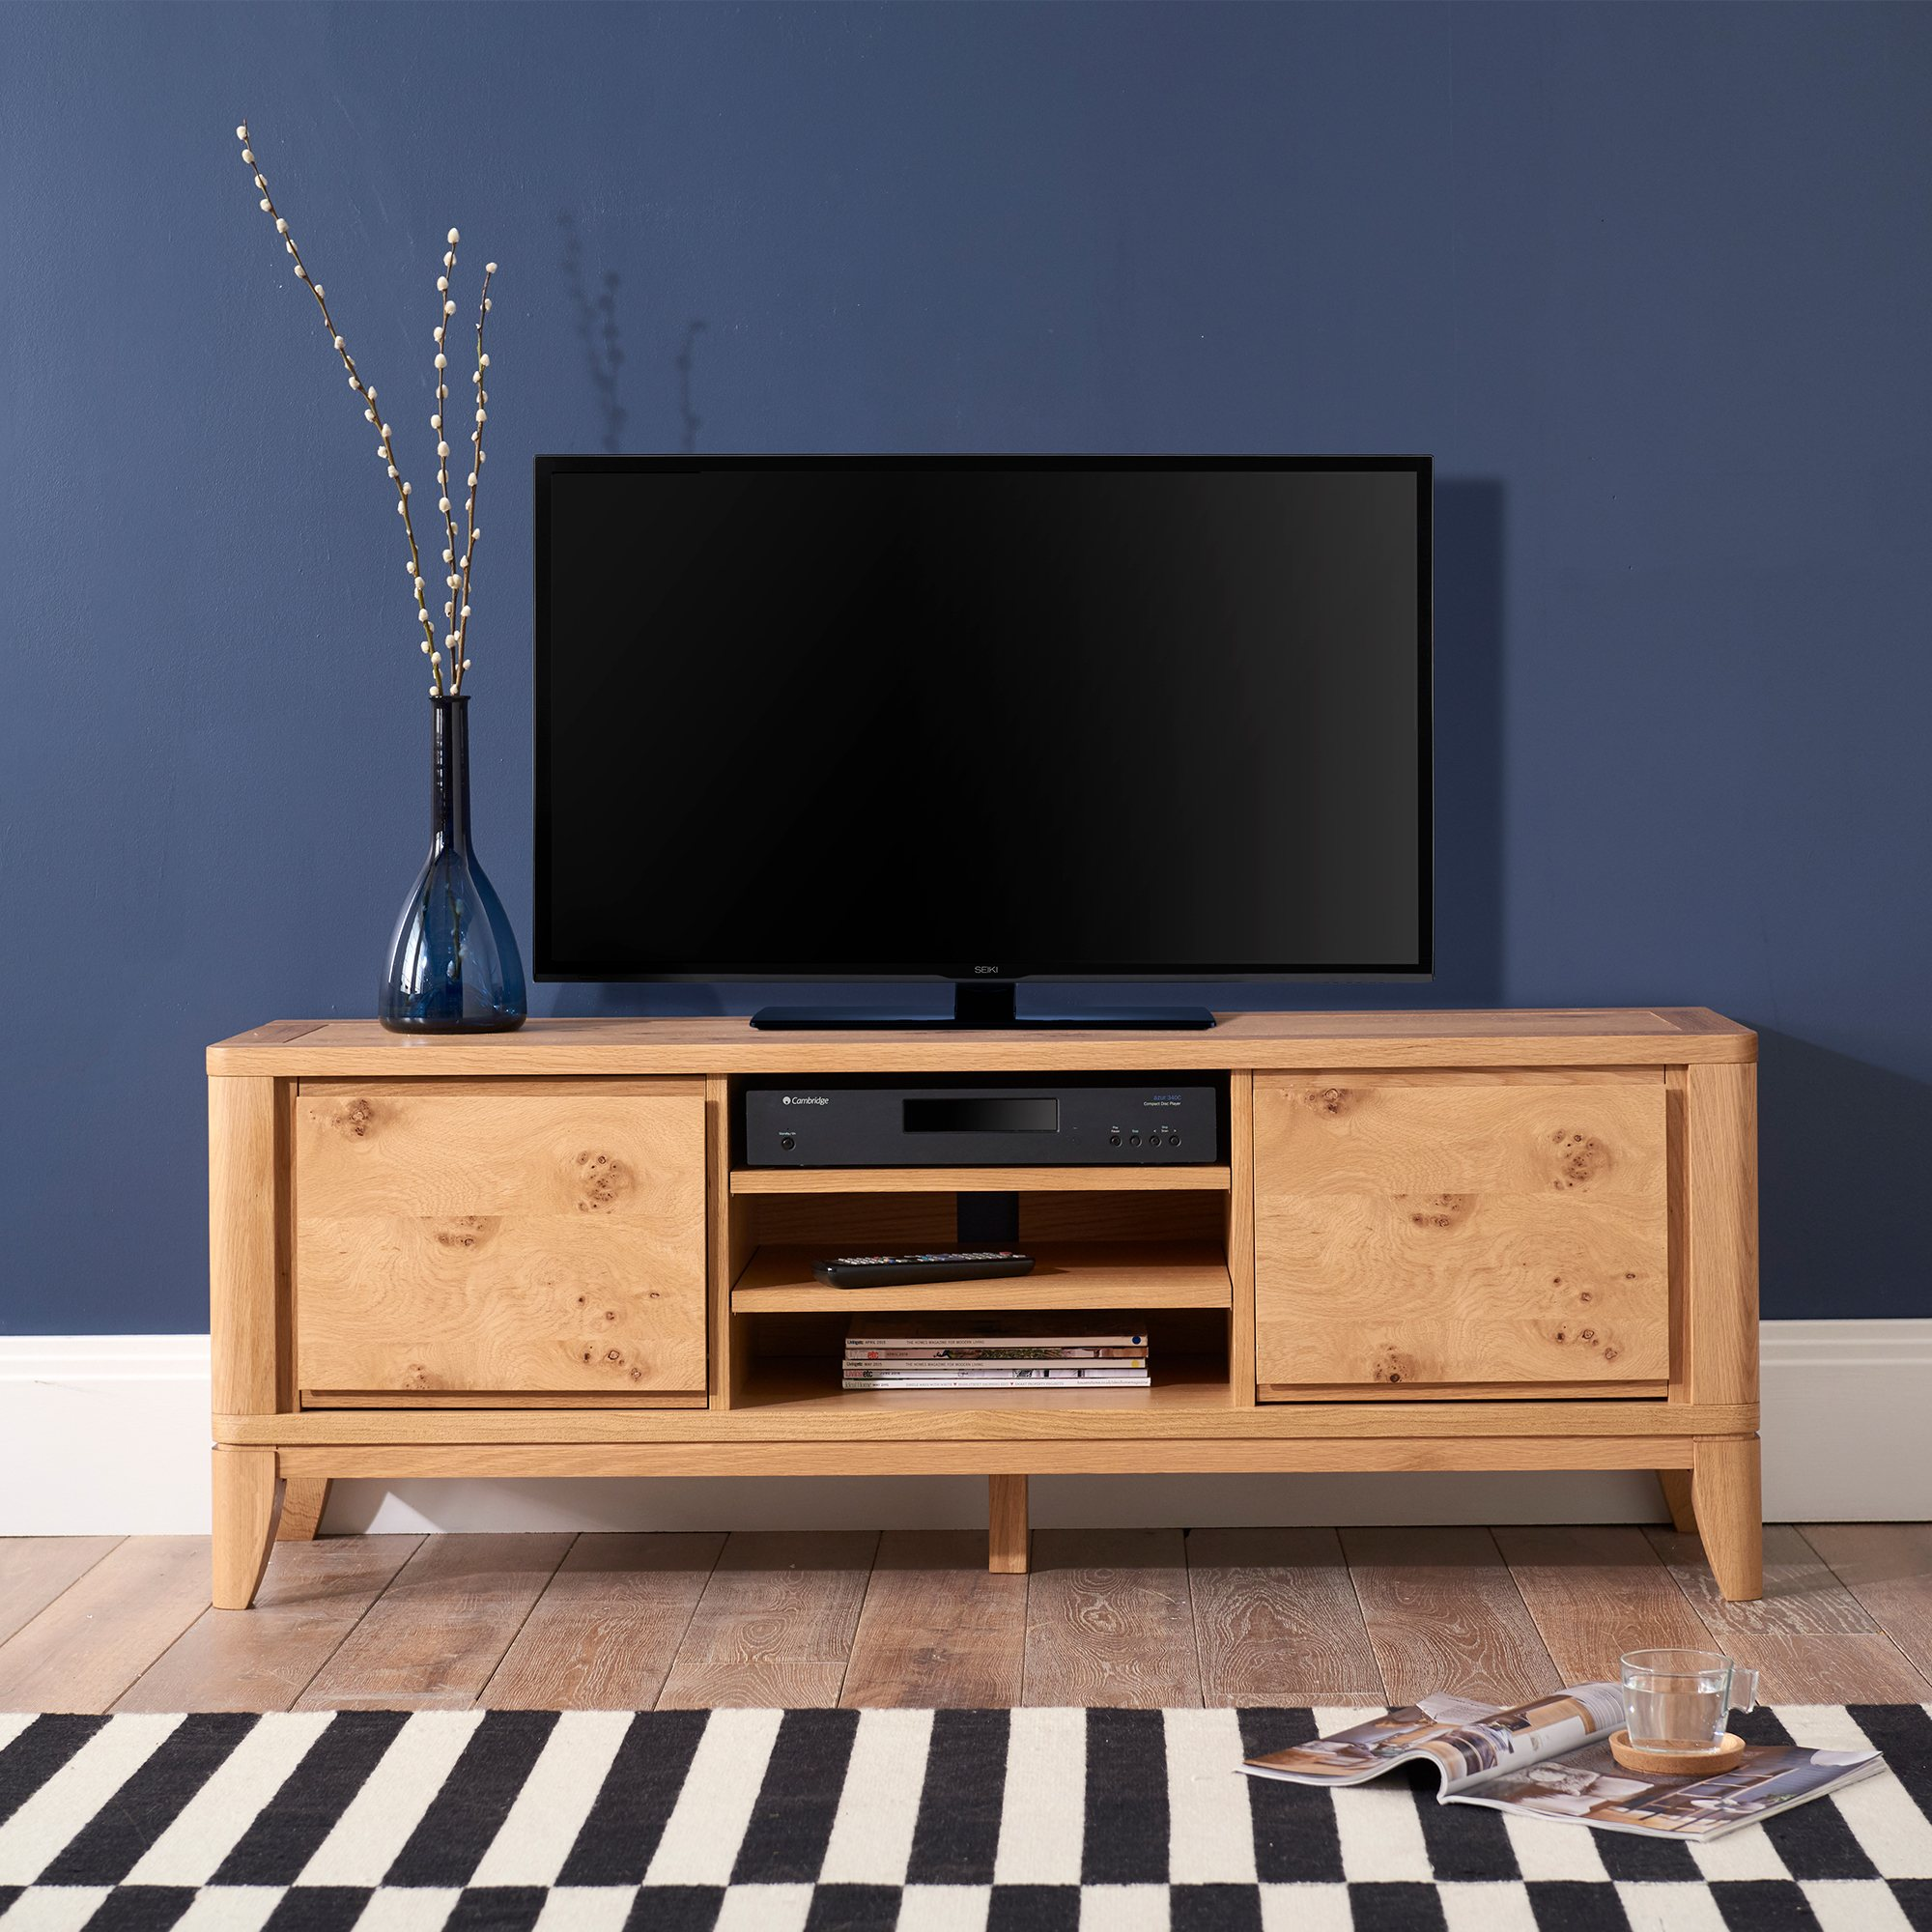 WILLOW PARK TV UNIT - L142cm x D40cm x H51cm